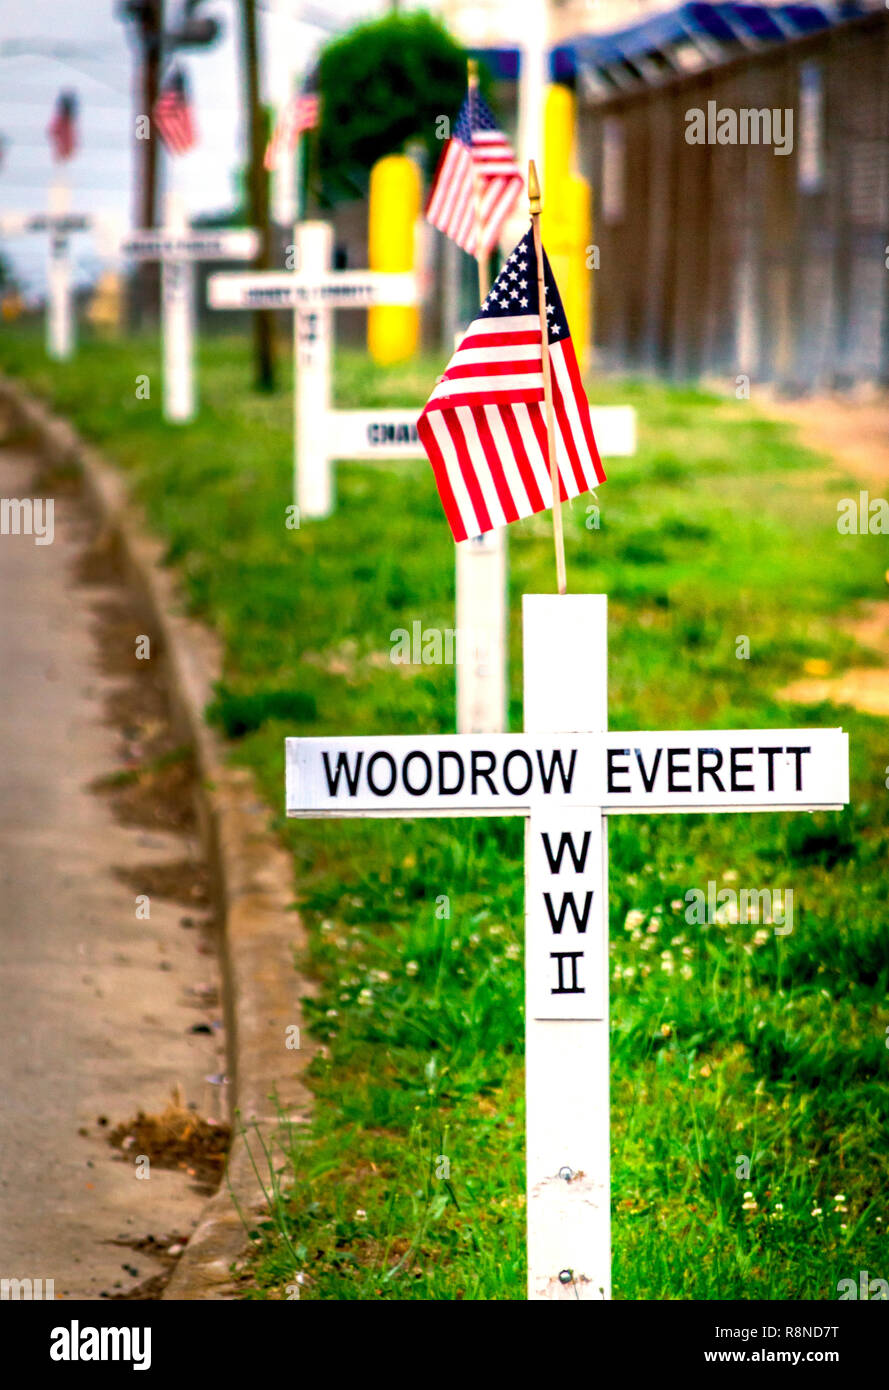 White crosses line New Peachtree Road in Doraville, Georgia, May 29, 2014. The crosses bear the names of the town's fallen war veterans. - Stock Image